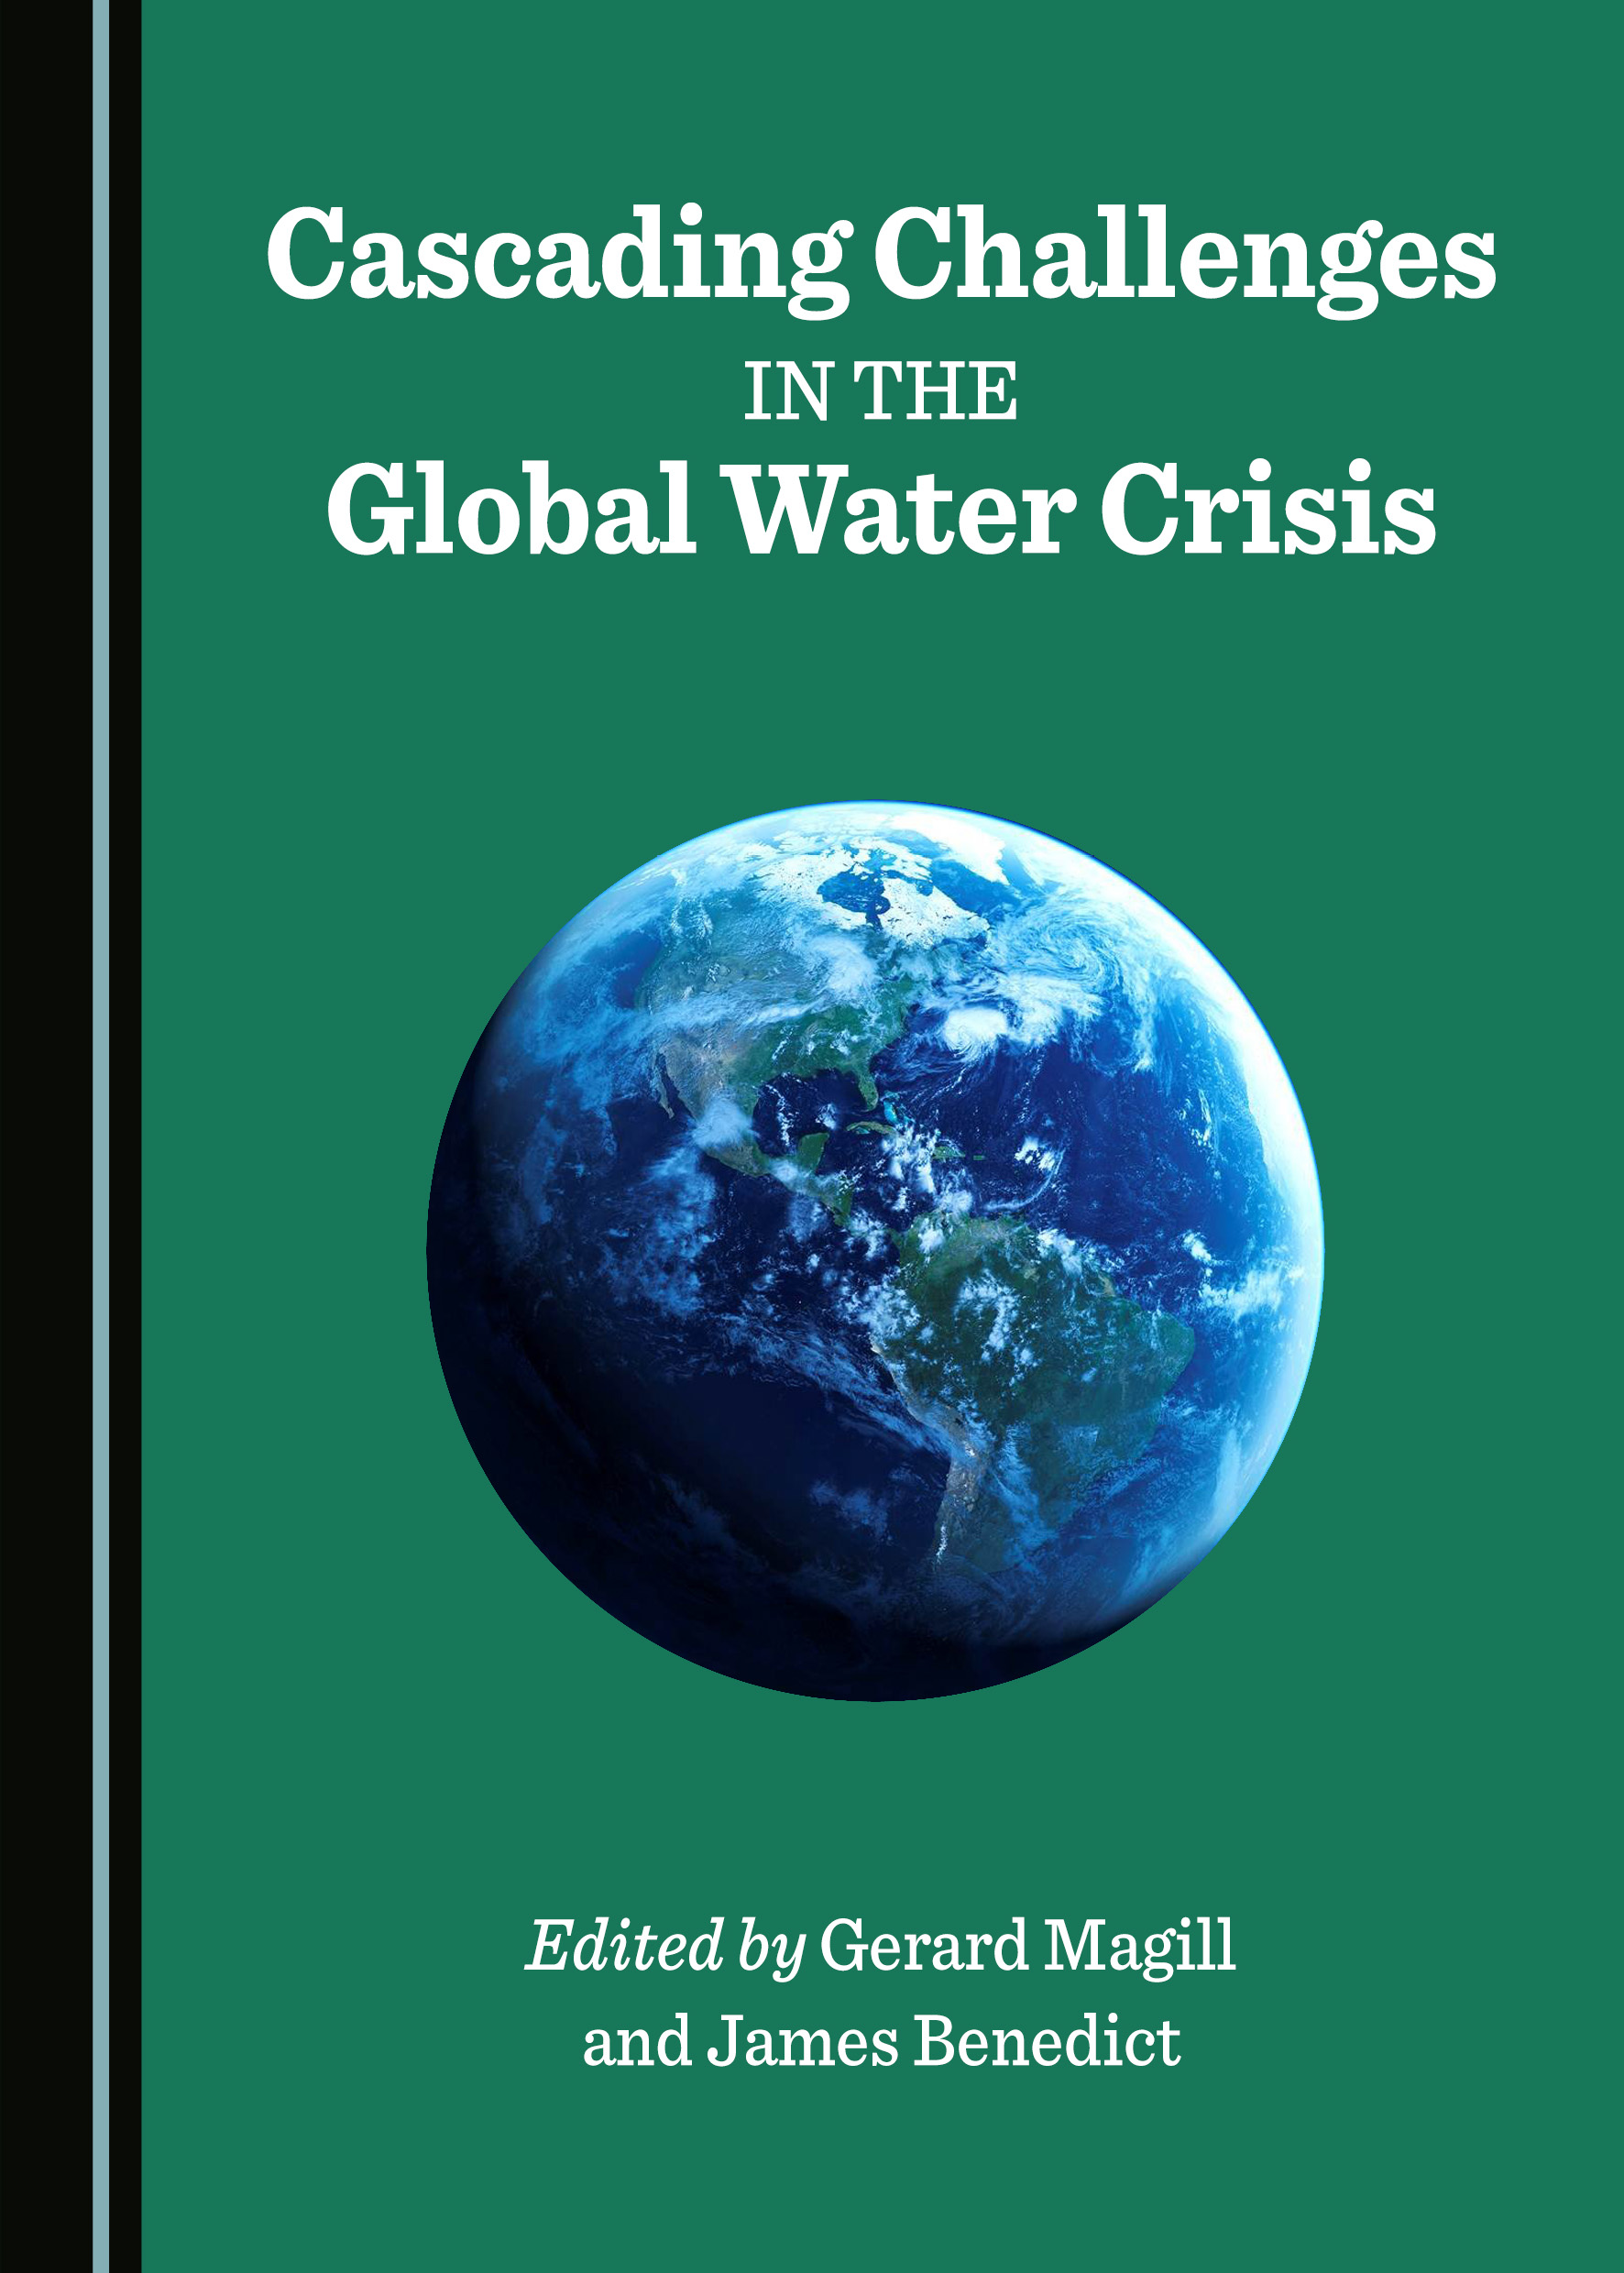 Cascading Challenges in the Global Water Crisis